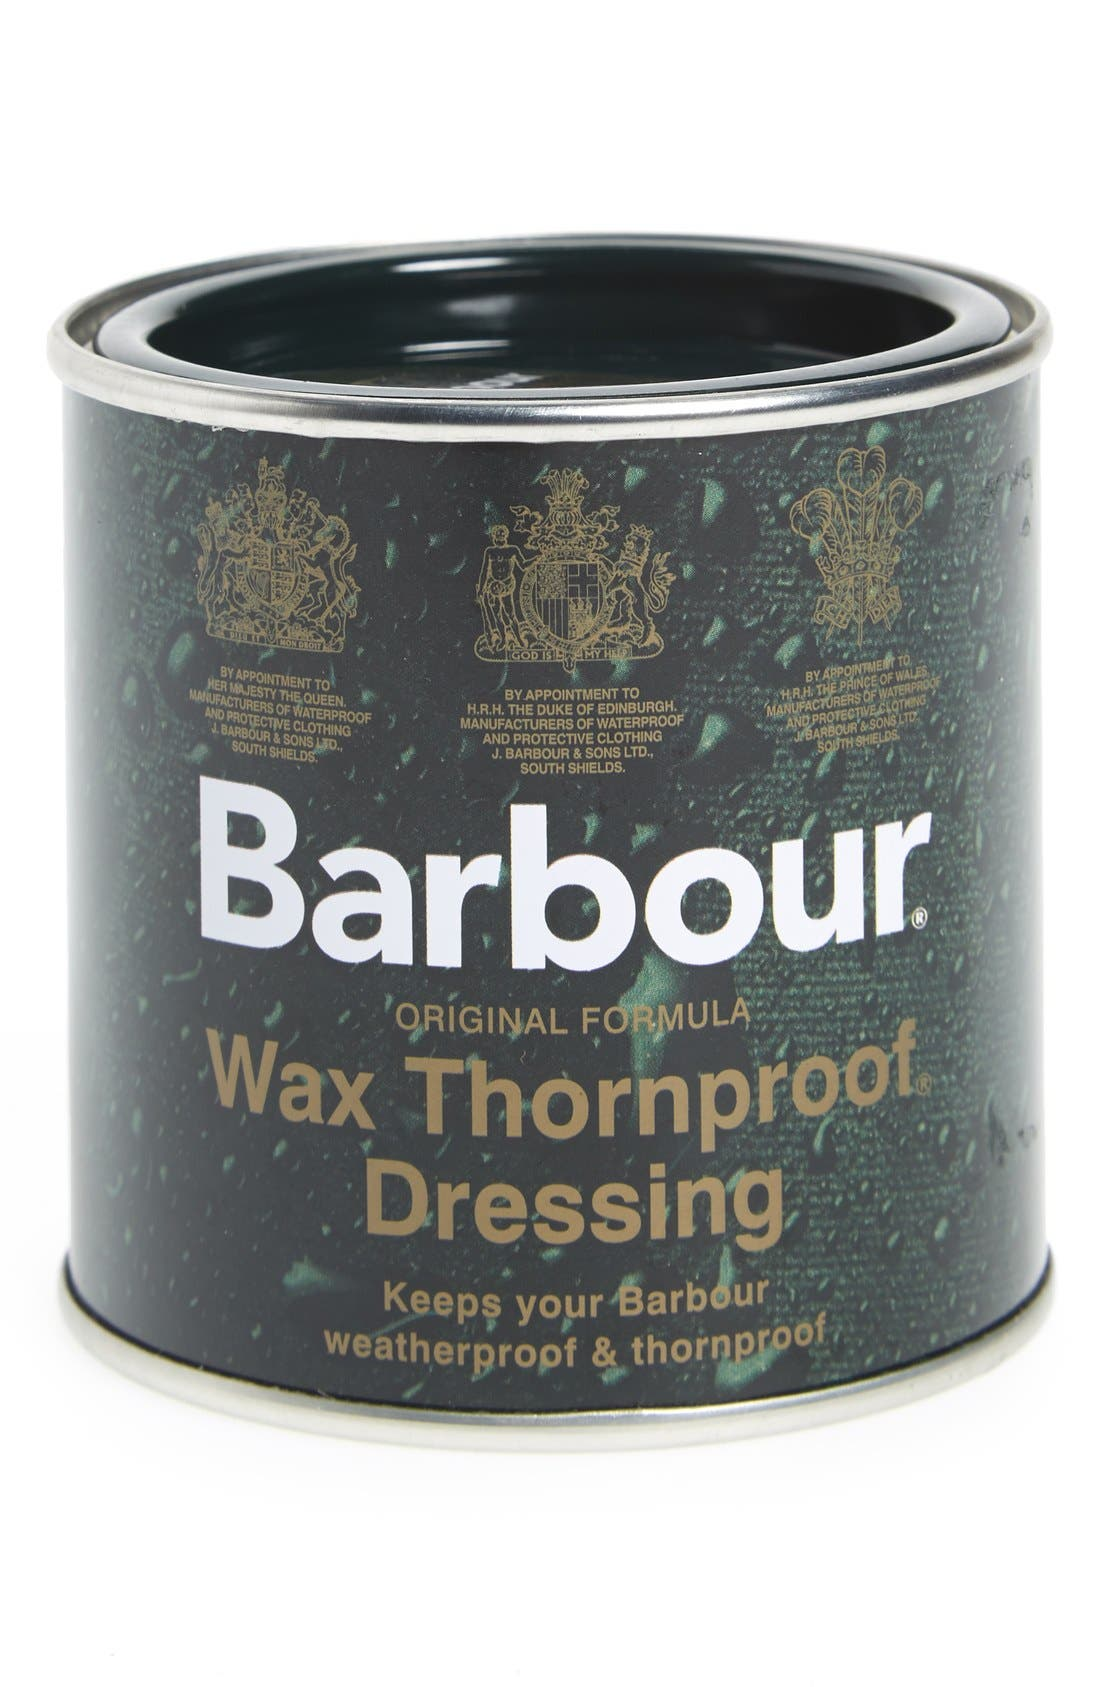 Alternate Image 1 Selected - Barbour Wax Thornproof Dressing